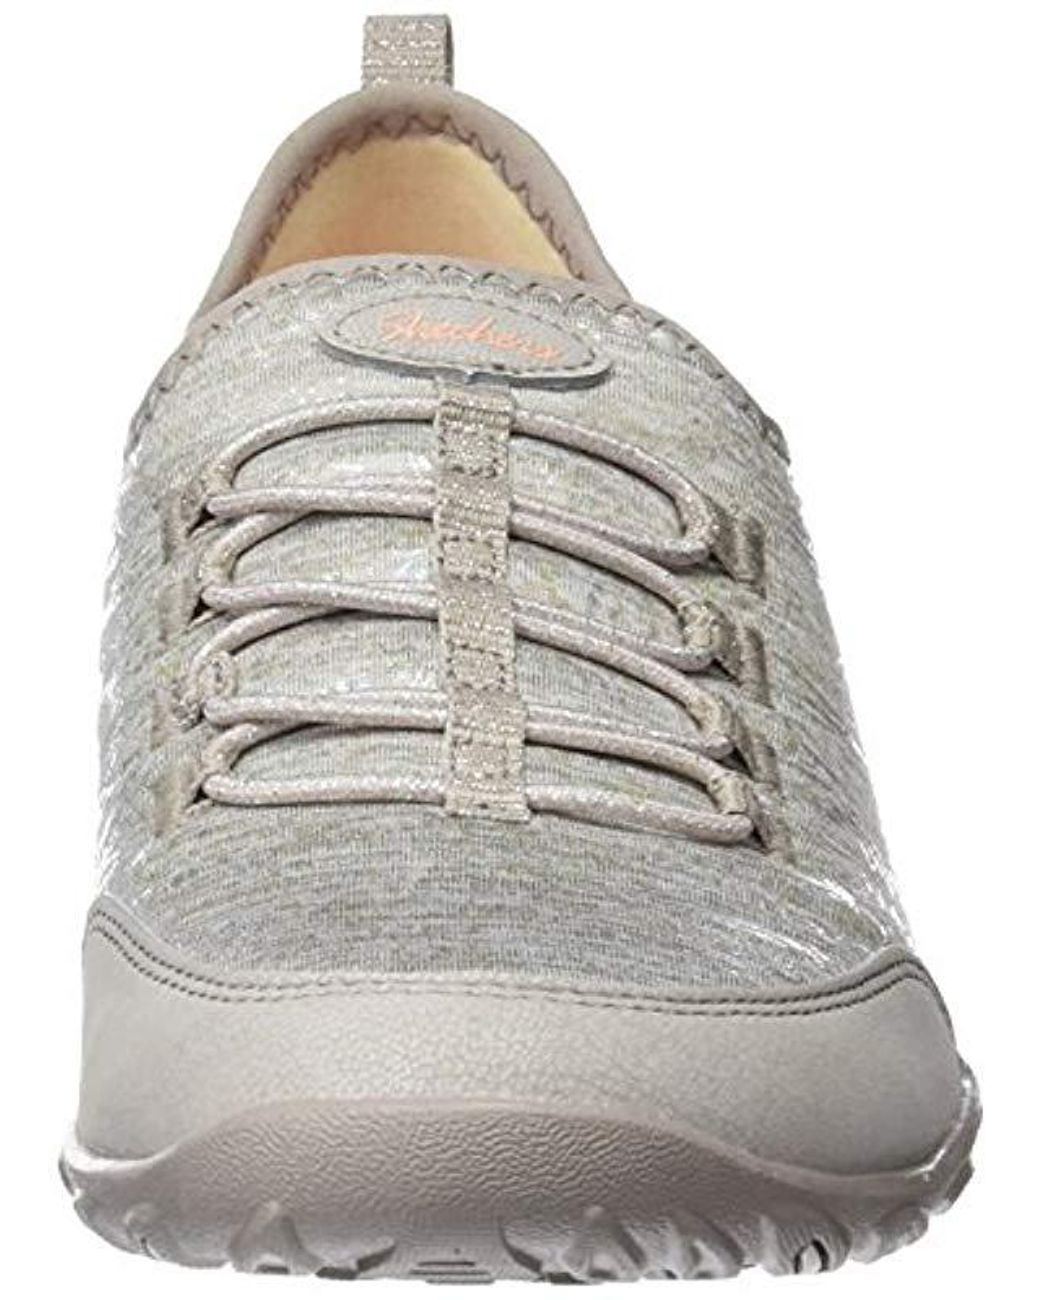 6 UK Taupe Skechers Womens 23119 Trainers Beige